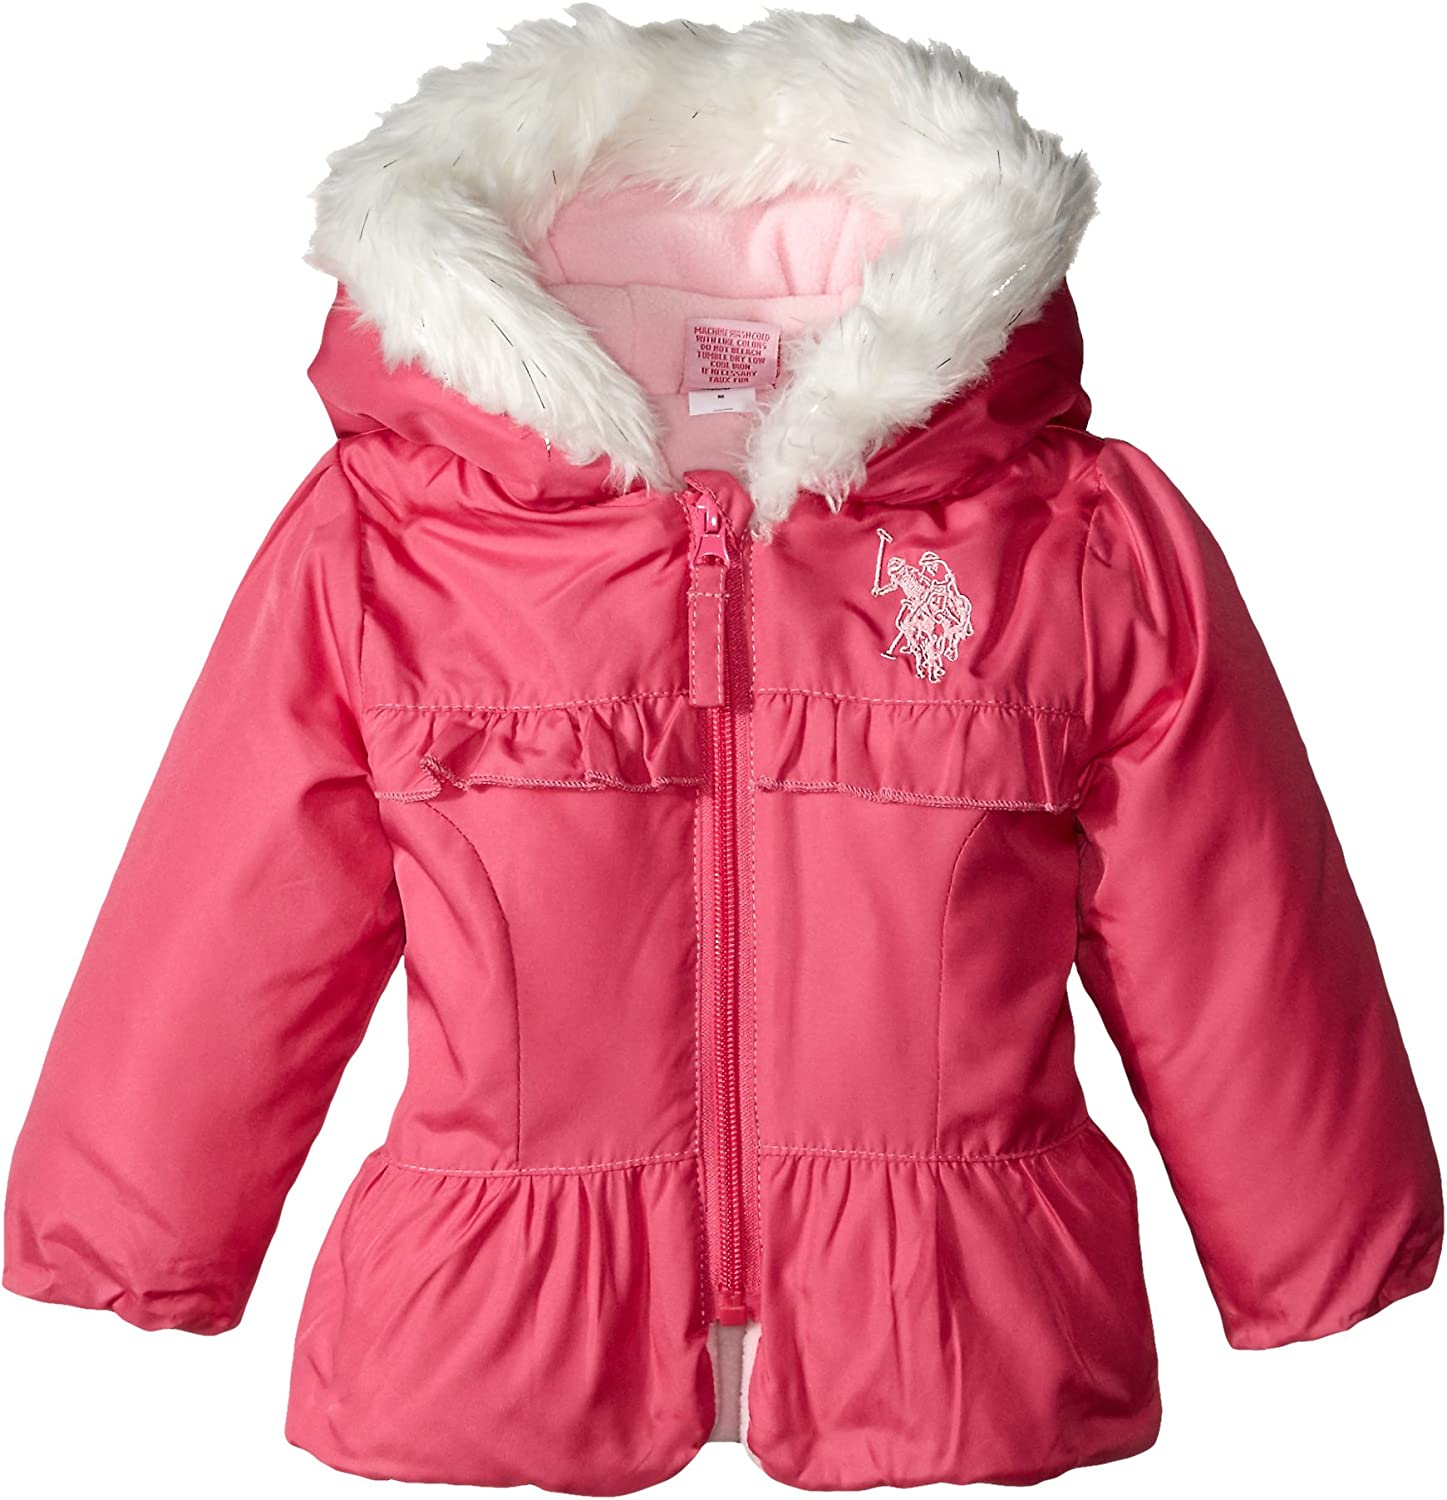 Sizes Baby-Big Polo Assn Girls Bubble Jacket U.S More Styles